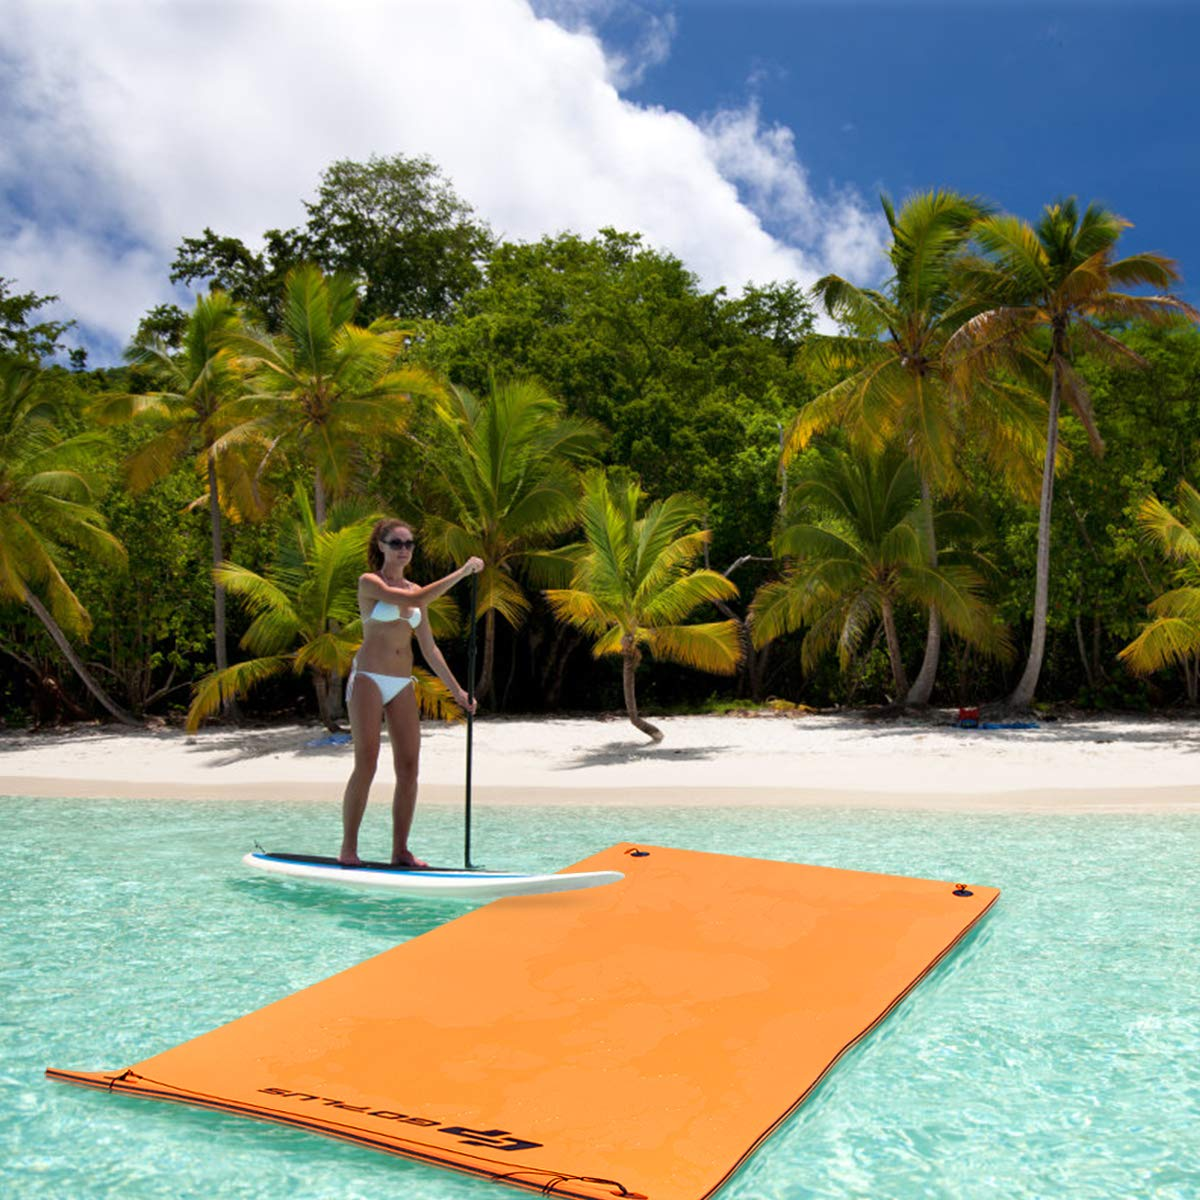 Goplus 12' x 6' Floating Water Pad for Lakes 3 Layer Floating Foam Mat Aqua Buoyancy Pad Designed for Water Recreation and Relaxing (Orange + Black) by Goplus (Image #4)